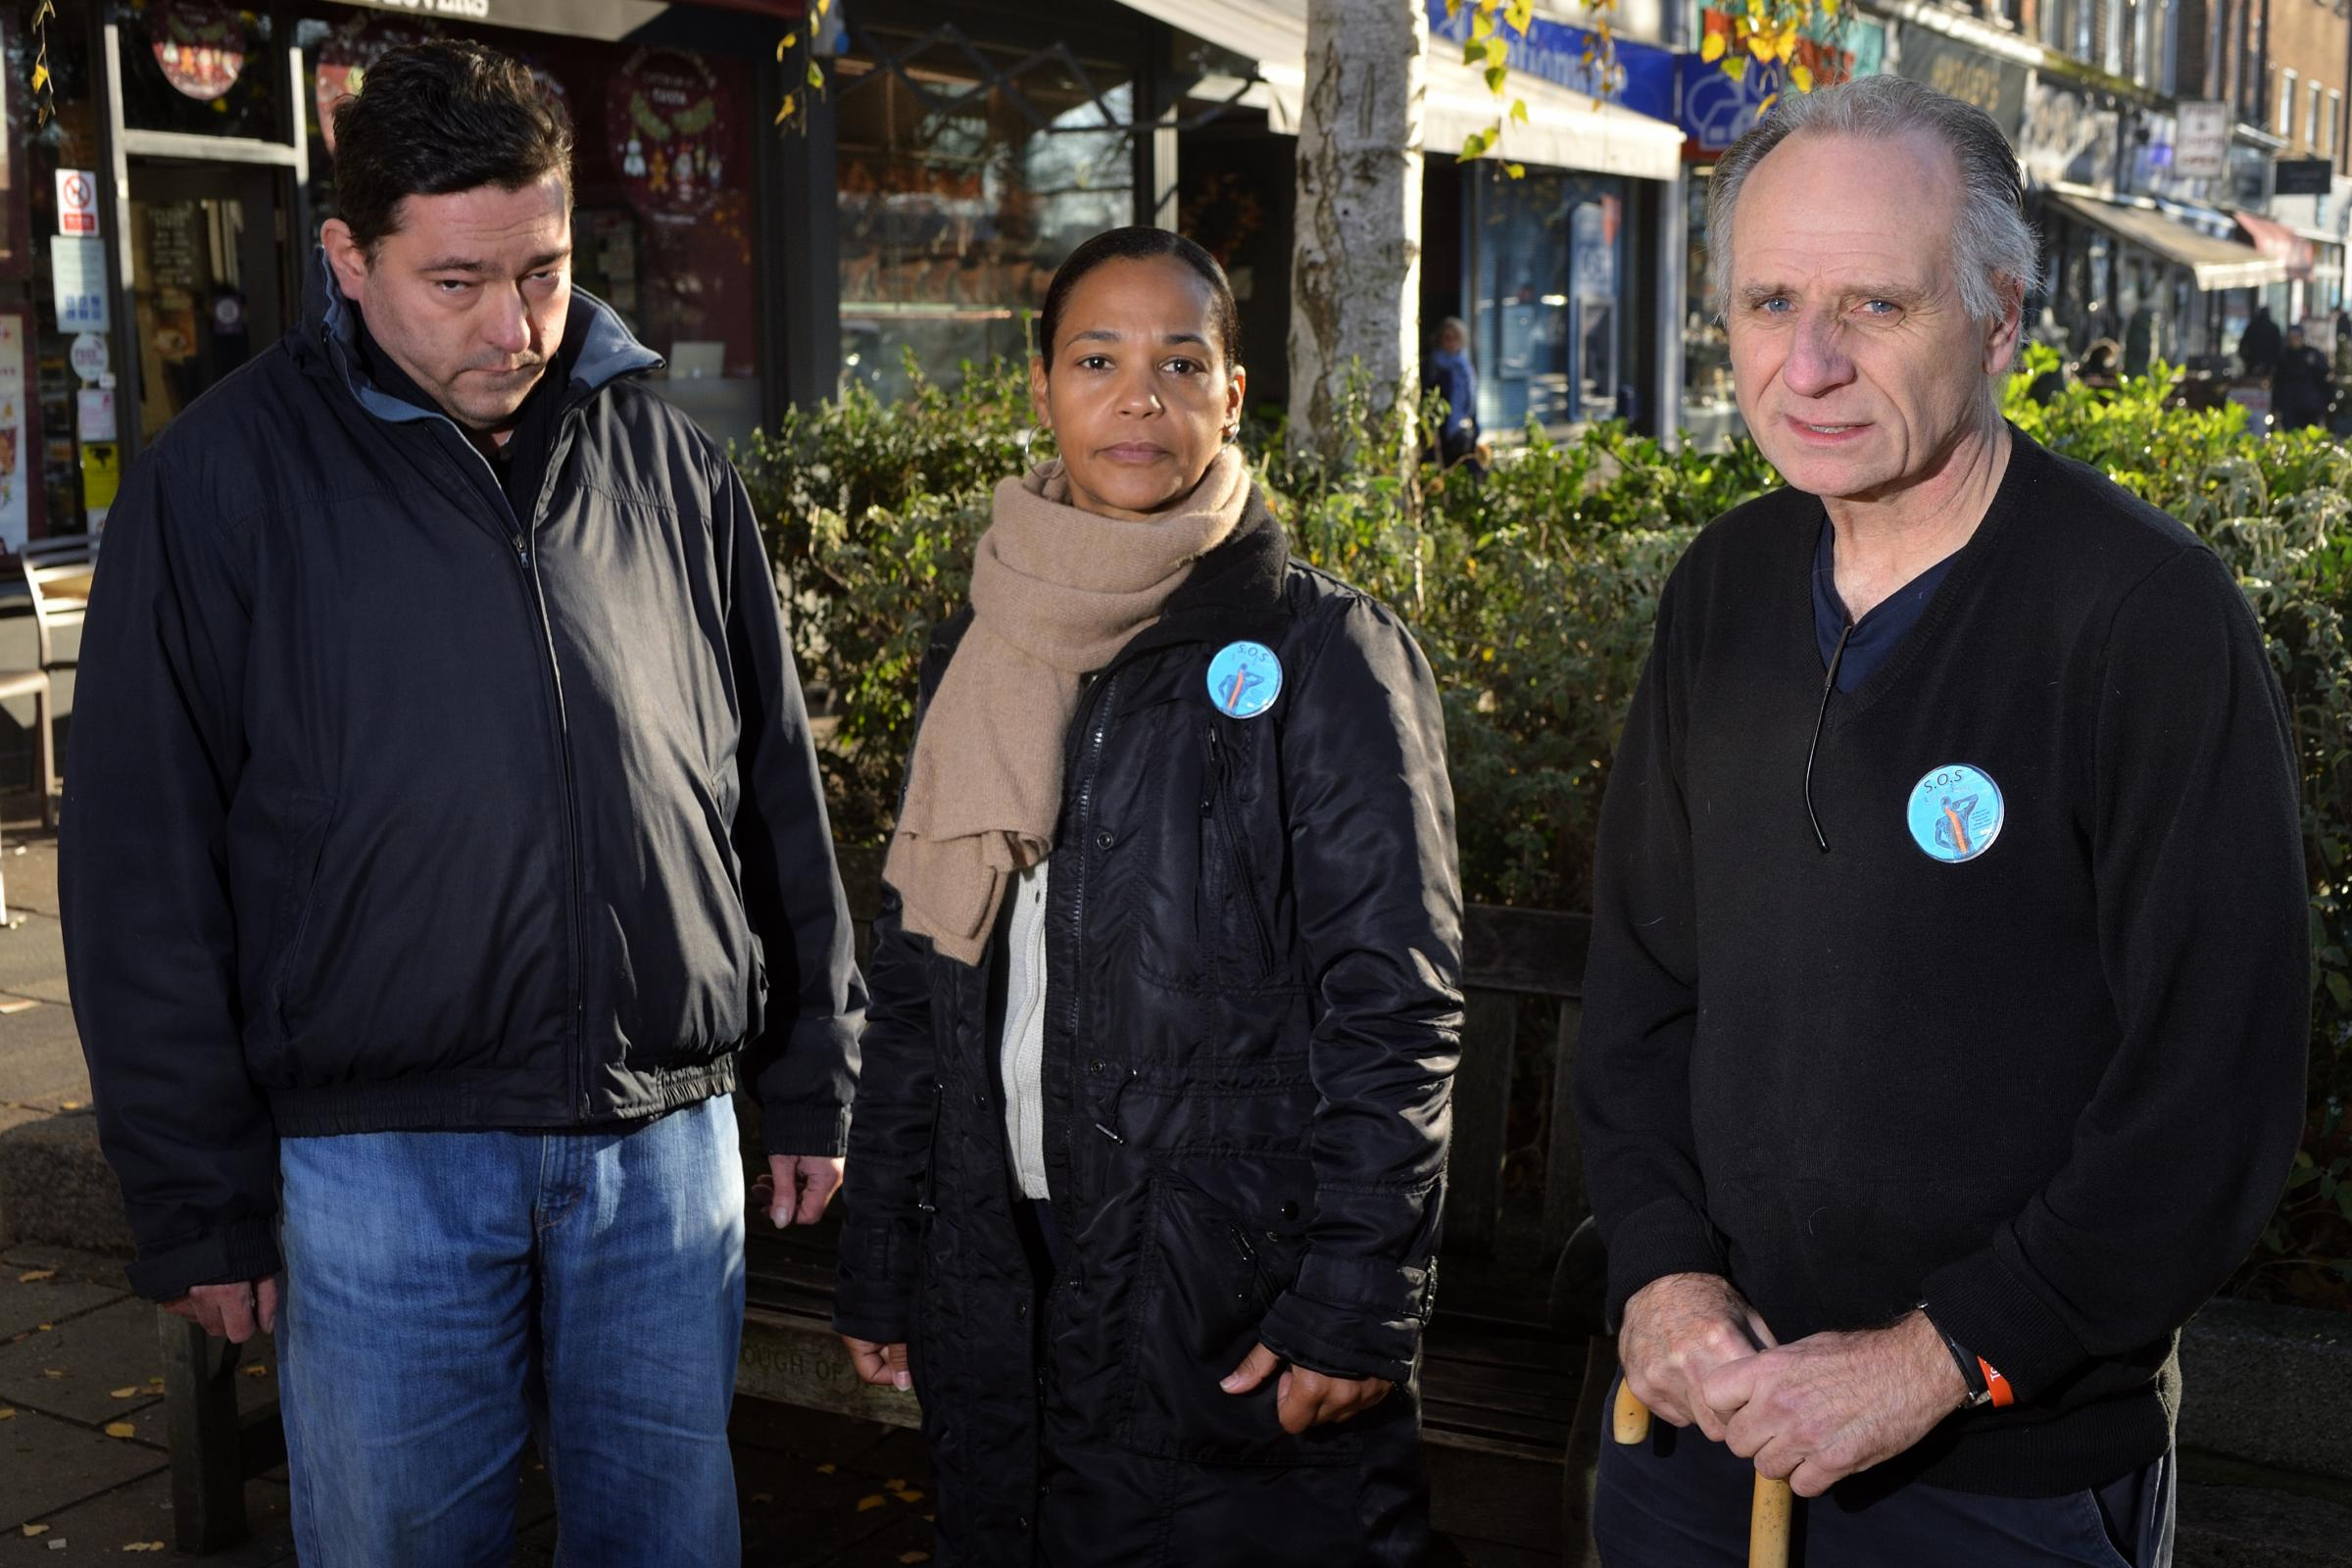 Allan Liddle, Andrea Herbert and Hamilton Reed, Members of Save Our Spines campaign group.